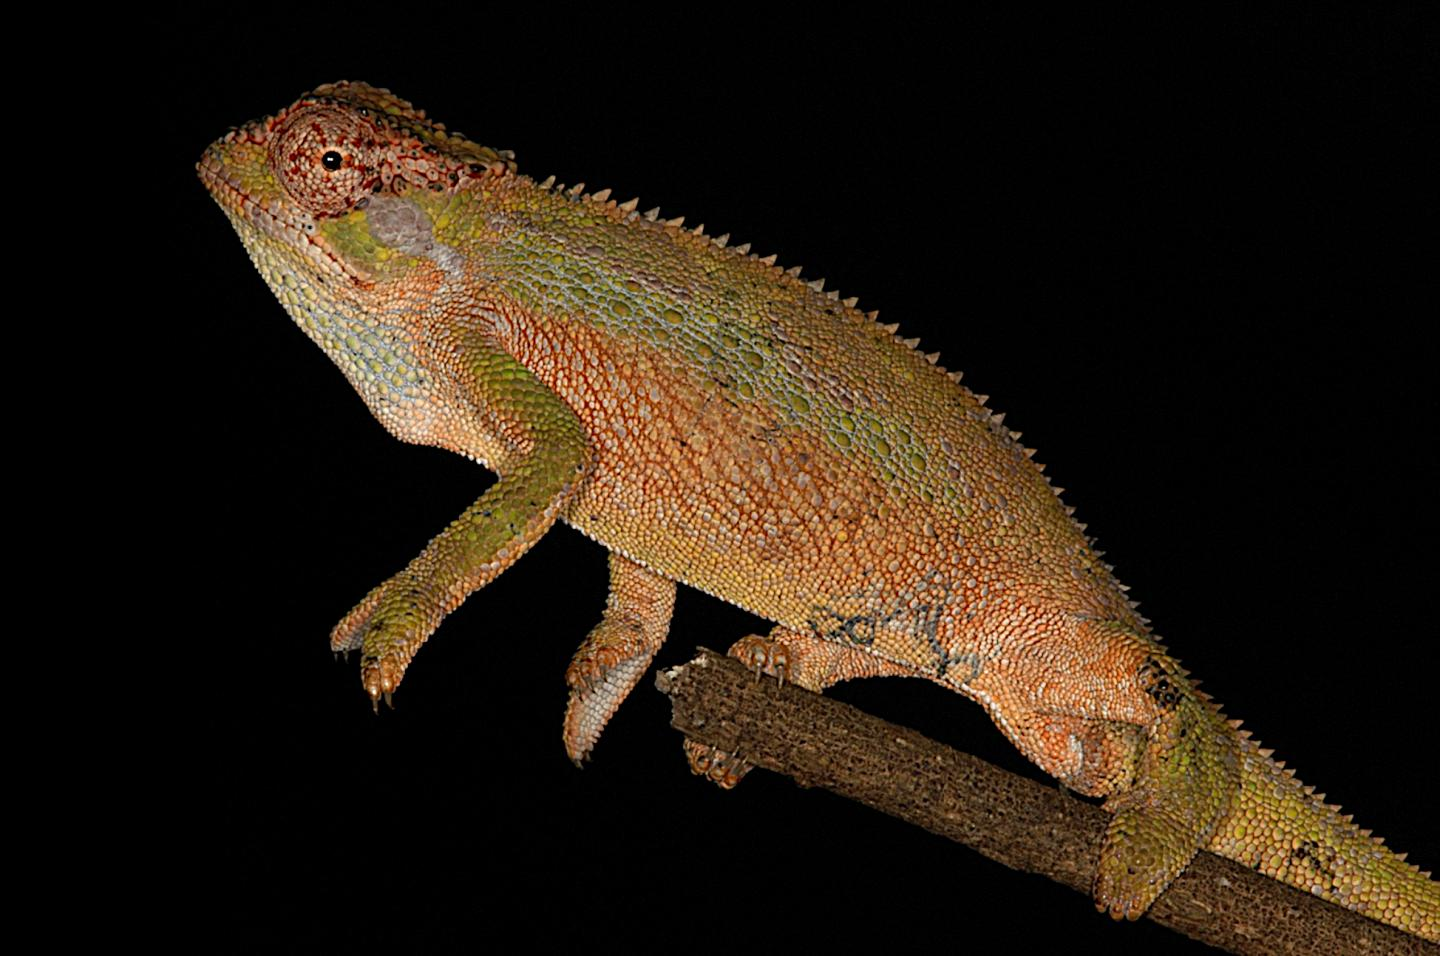 the new chameleon, Trioceros wolfgangboehmei. Photo from Koppetsch et al. CC-BY 4.0